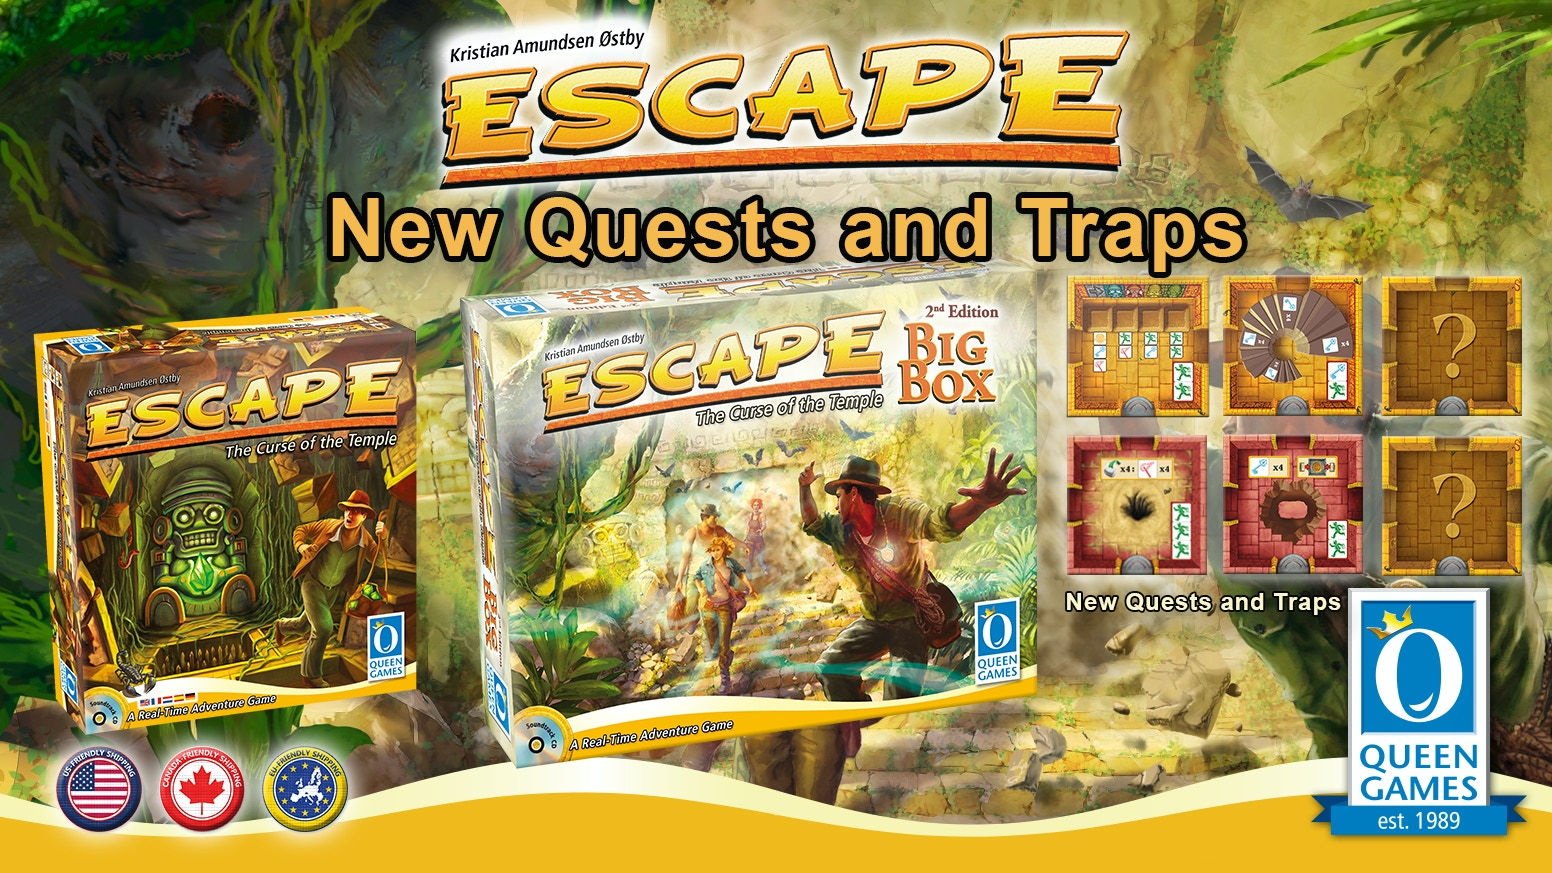 Get the full Escape experience with the Big Box alongside the new Quest & Trap chambers!